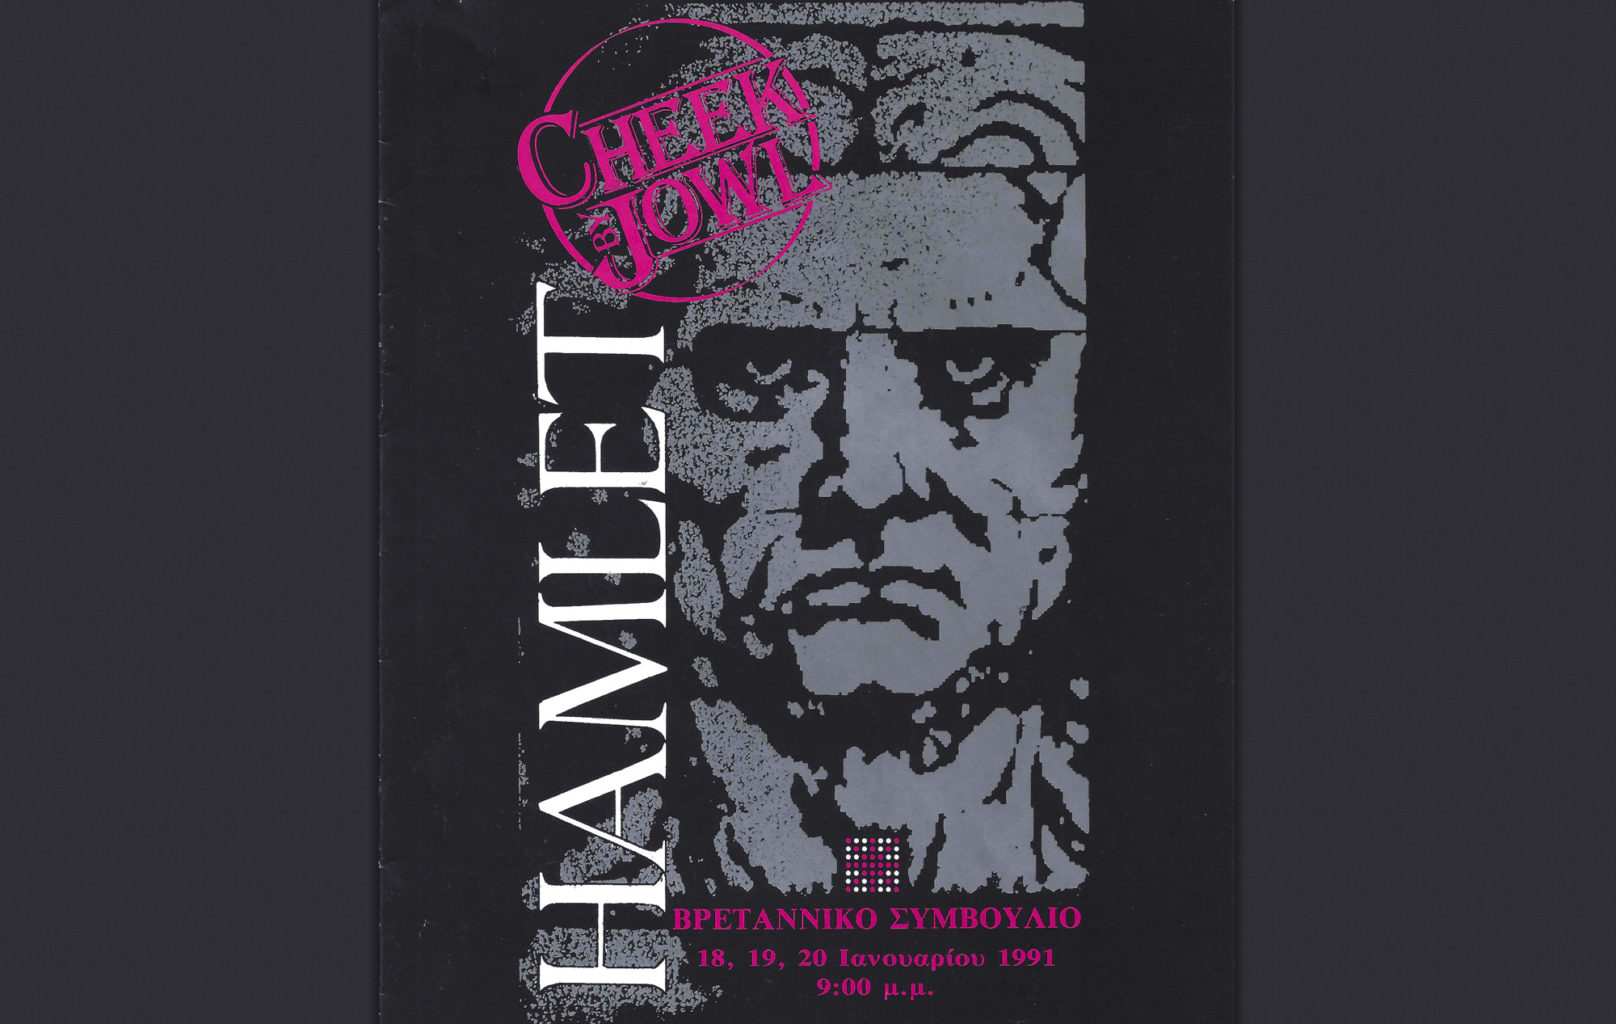 Programme from Cheek by Jowl's 1990 production of Hamlet